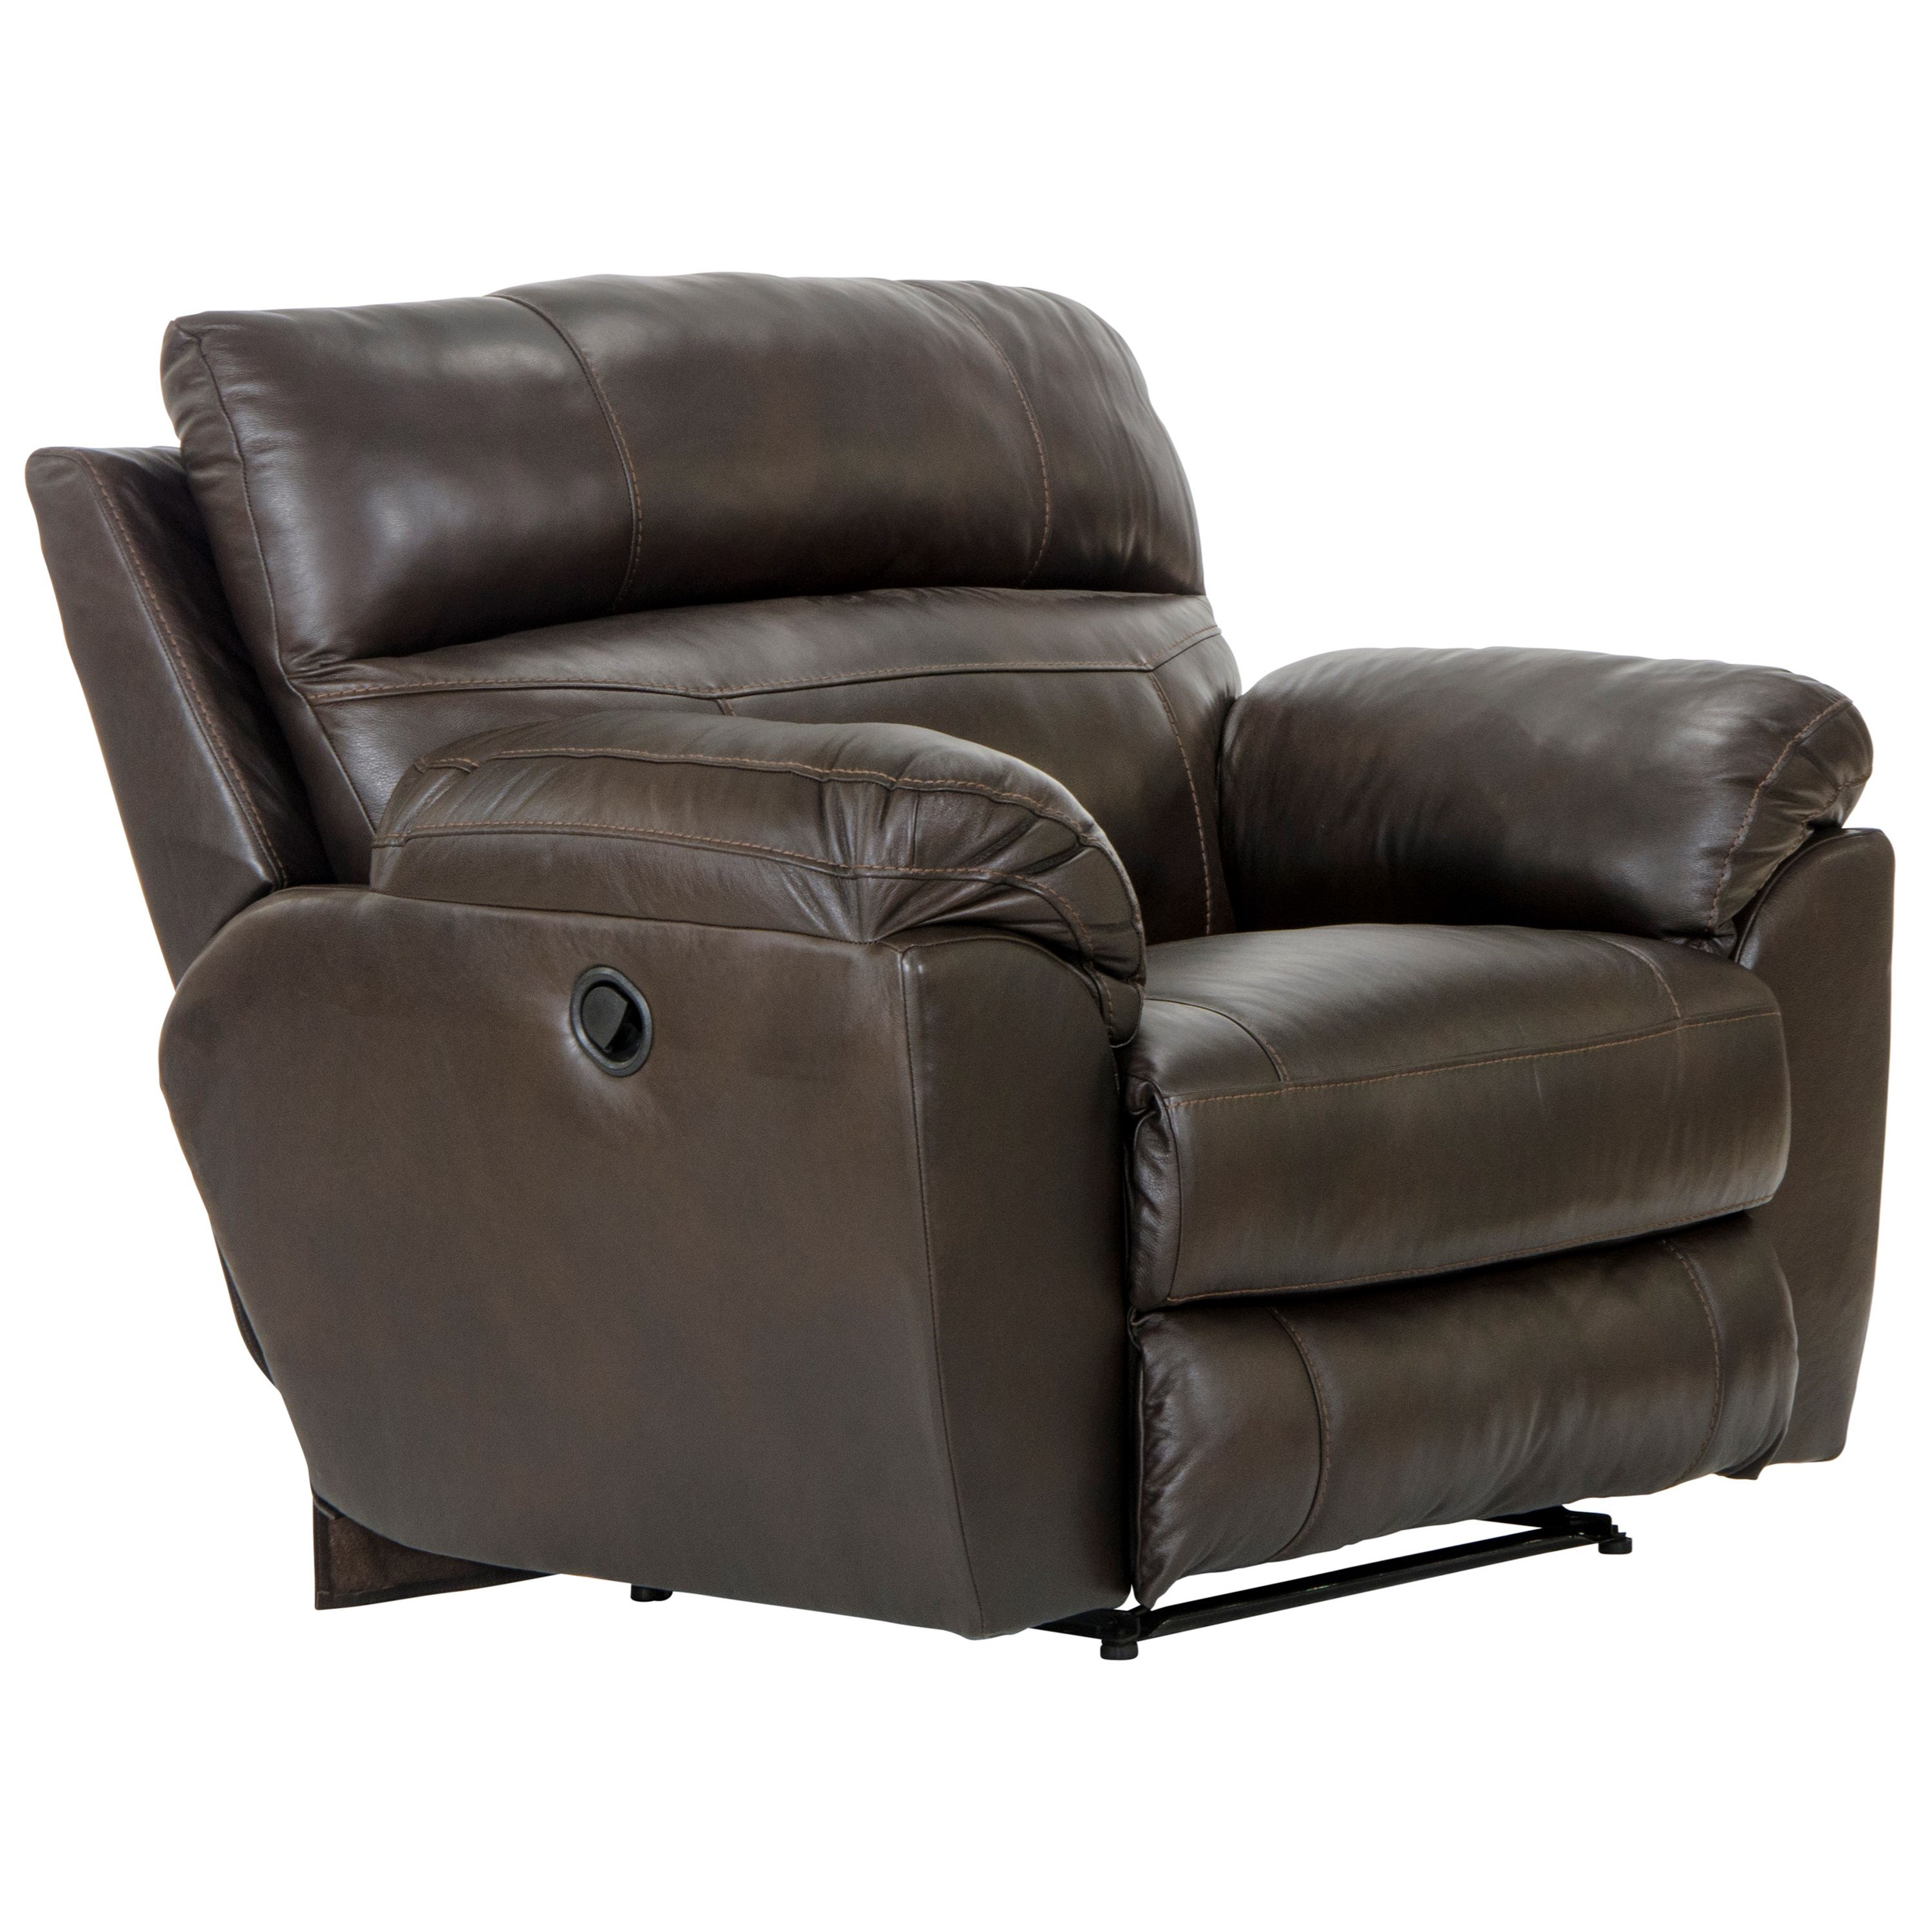 Costa Lay Flat Recliner by Catnapper at Northeast Factory Direct